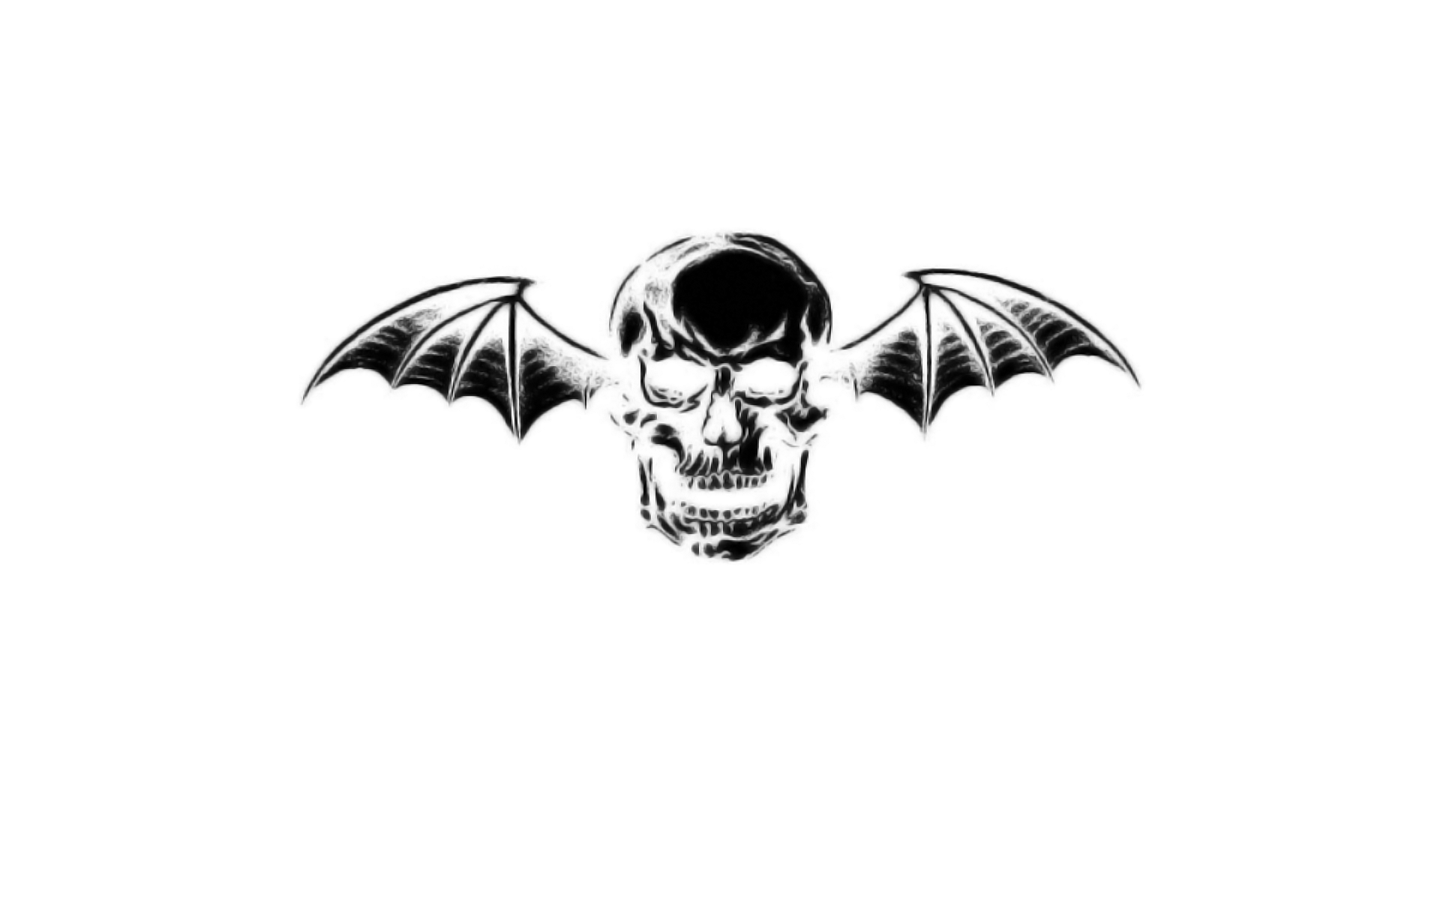 wallpapers hd for mac Avenged Sevenfold Wallpaper High Definition 1440x900